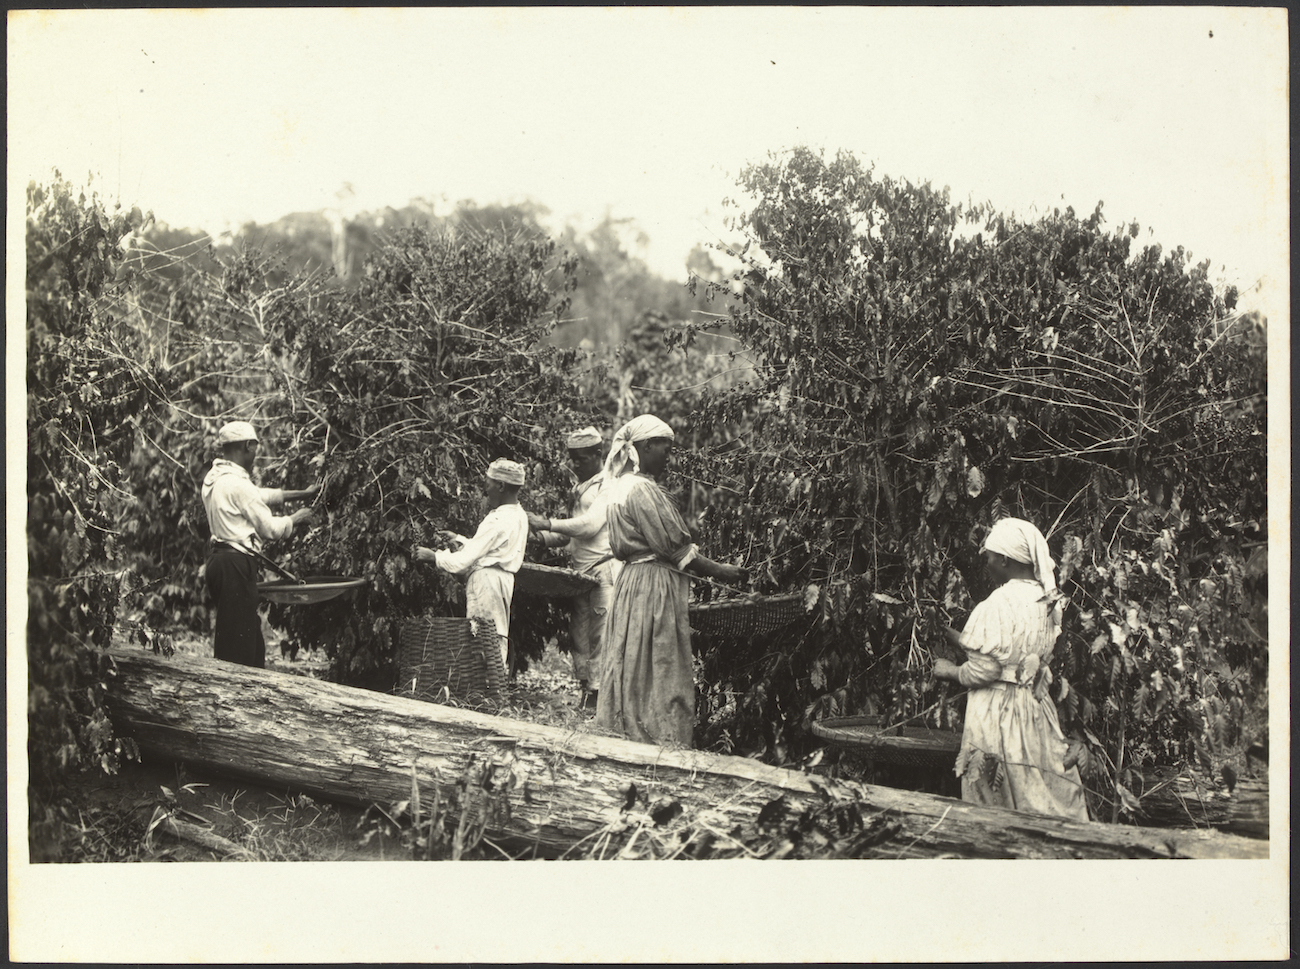 Black and white photo of women and men in head coverings picking beans from large coffee plants